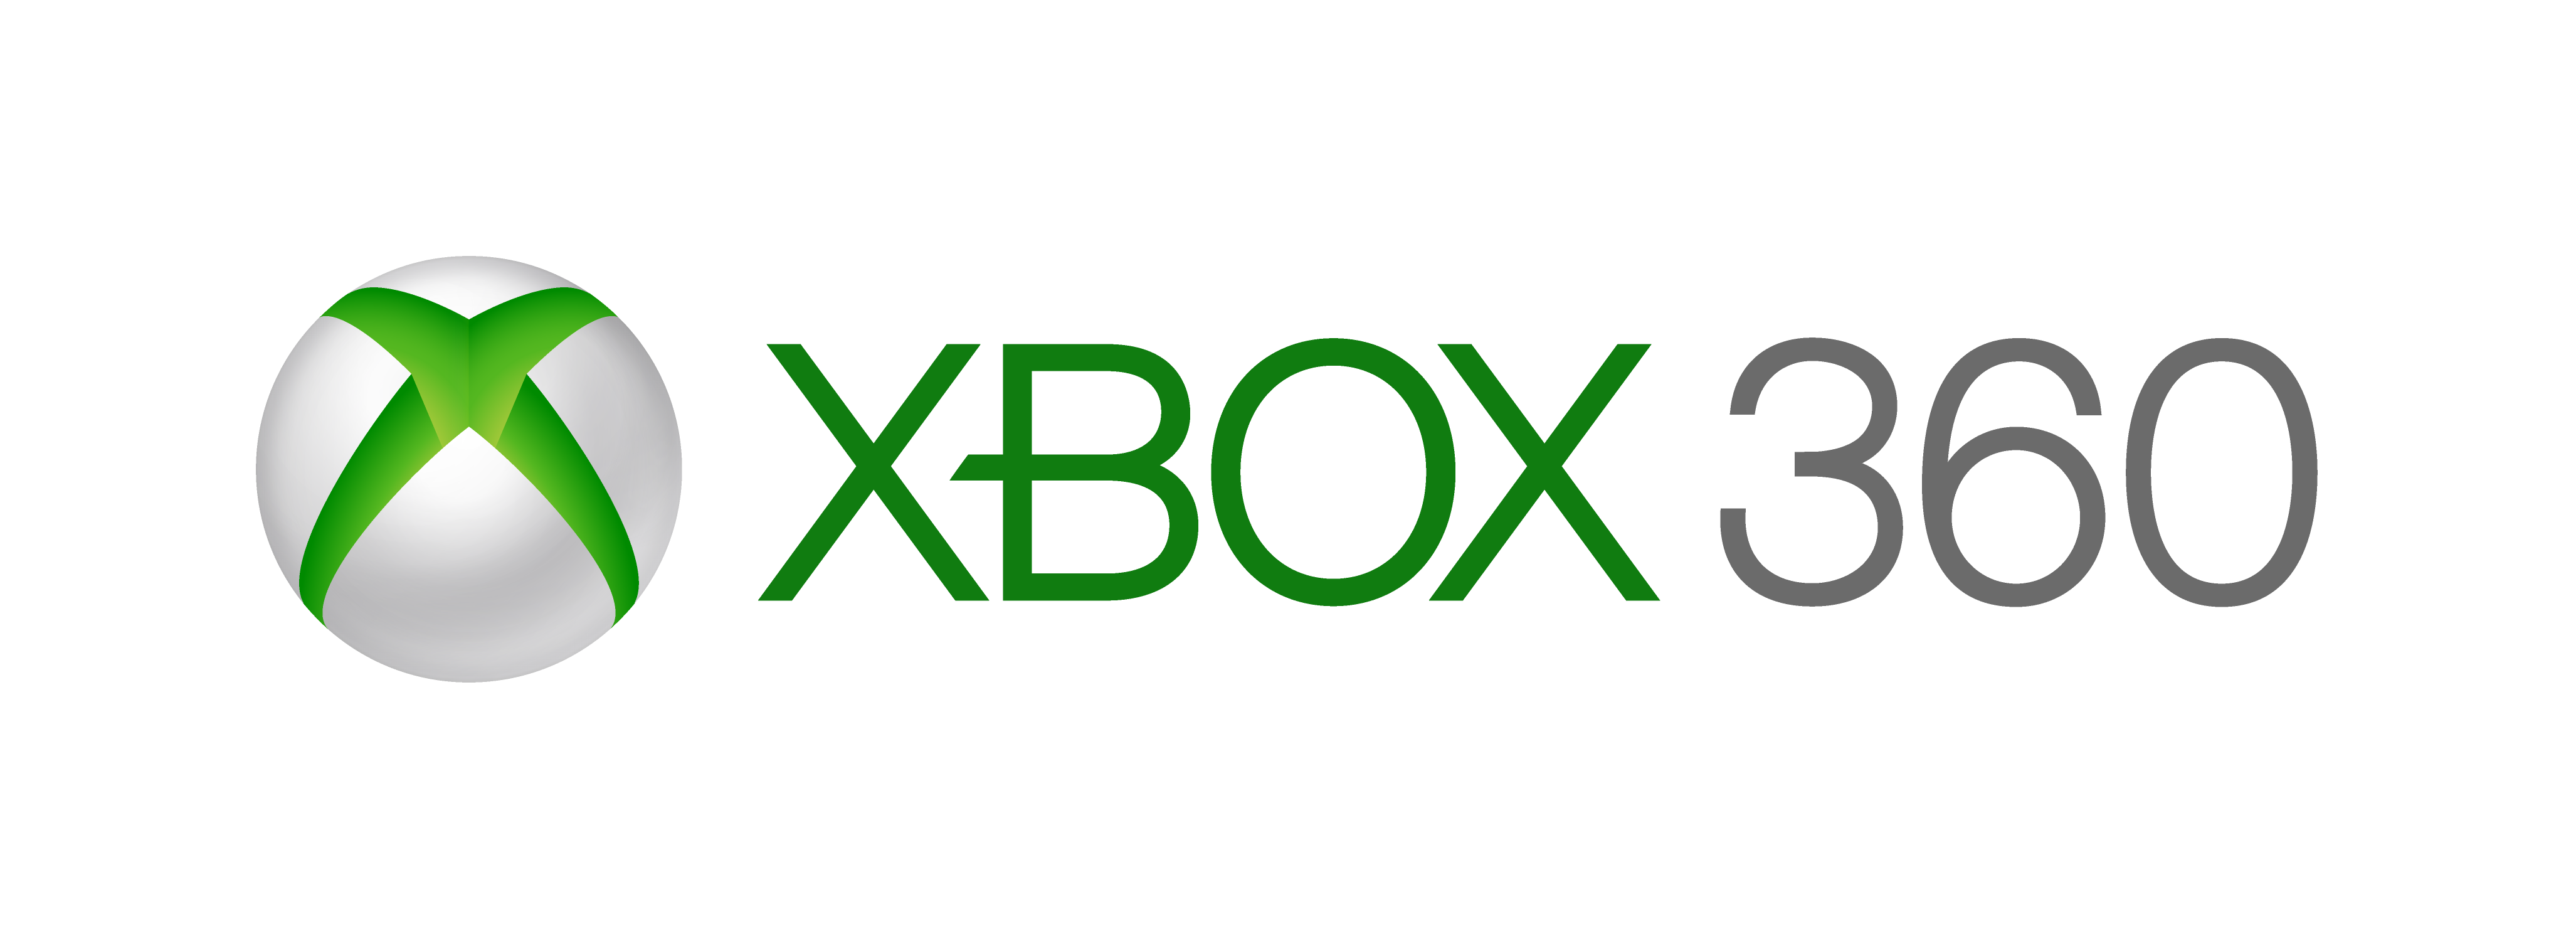 Xbox clipart xbox logo. Png file transparentpng